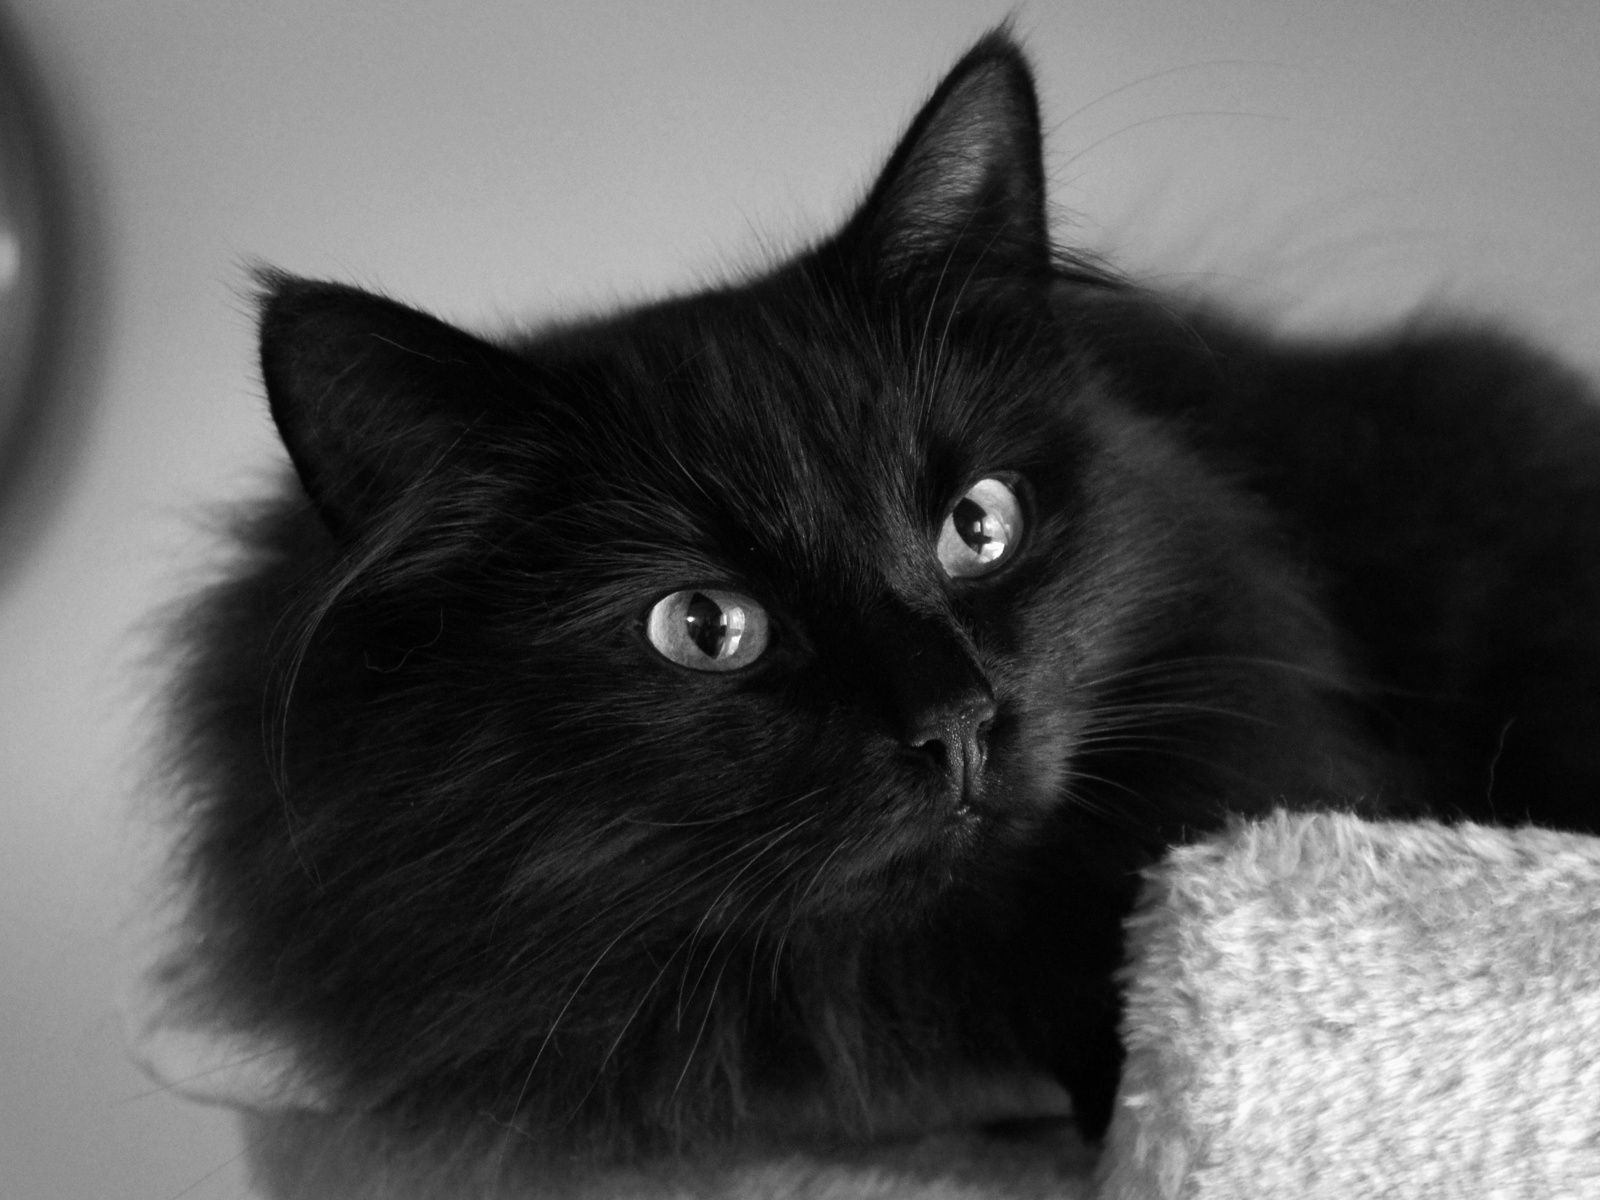 Some Cultures Such As The Scottish And Japanese Believe Black Cats Will Bring Home Prosperity And Good Luck Fluffy Black Cat Fluffy Cat Beautiful Cats